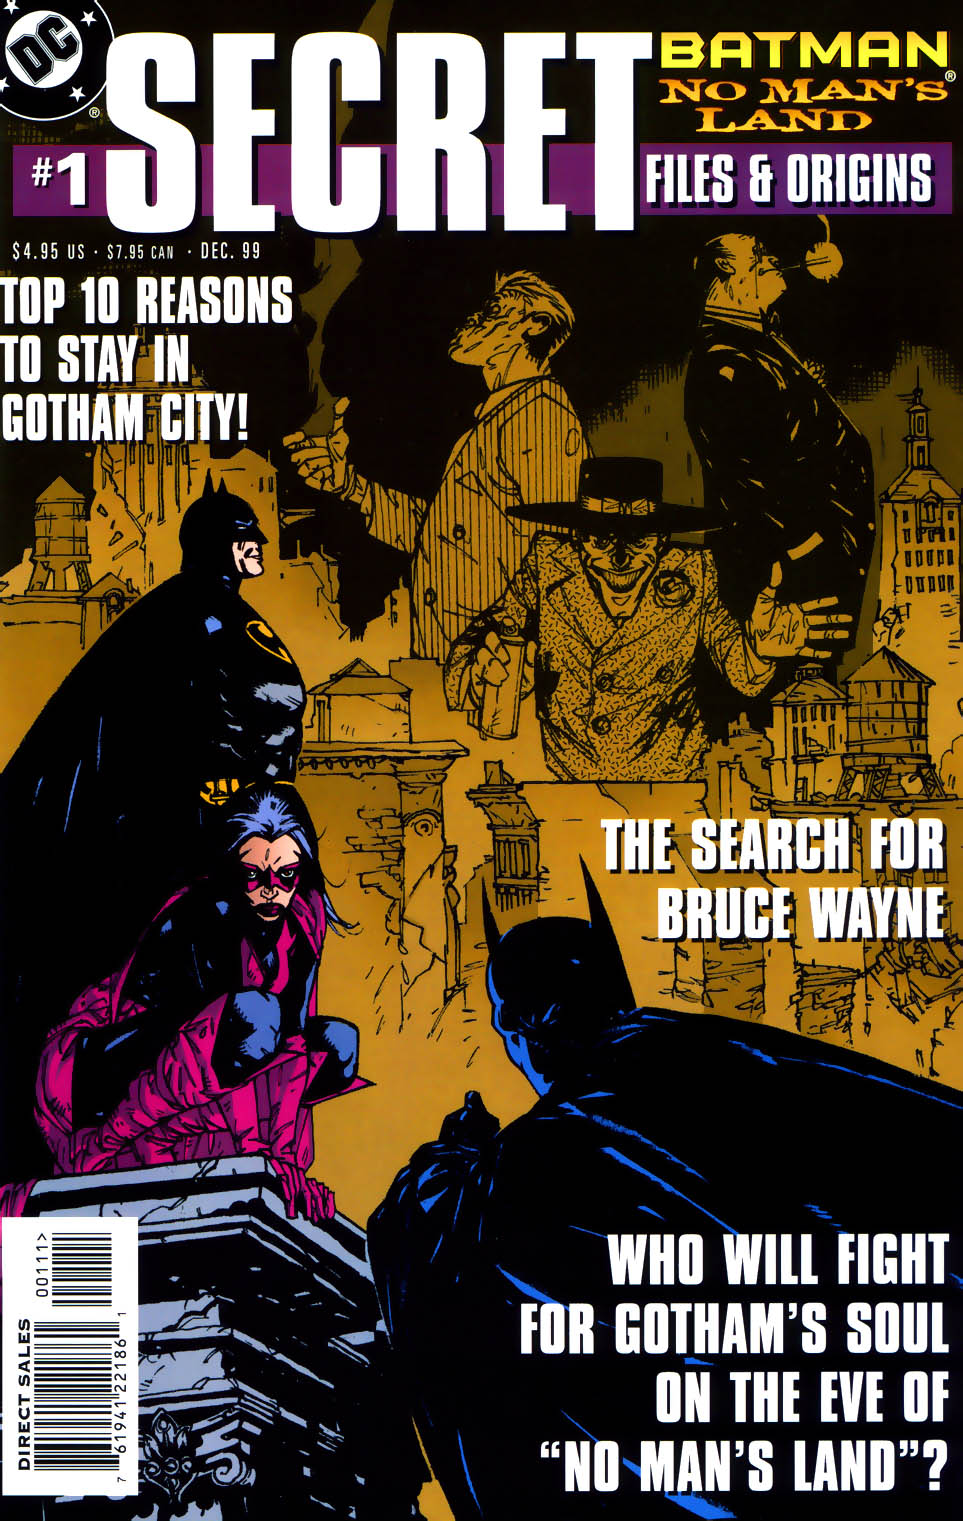 Read online Batman: No Man's Land Secret Files comic -  Issue # Full - 1